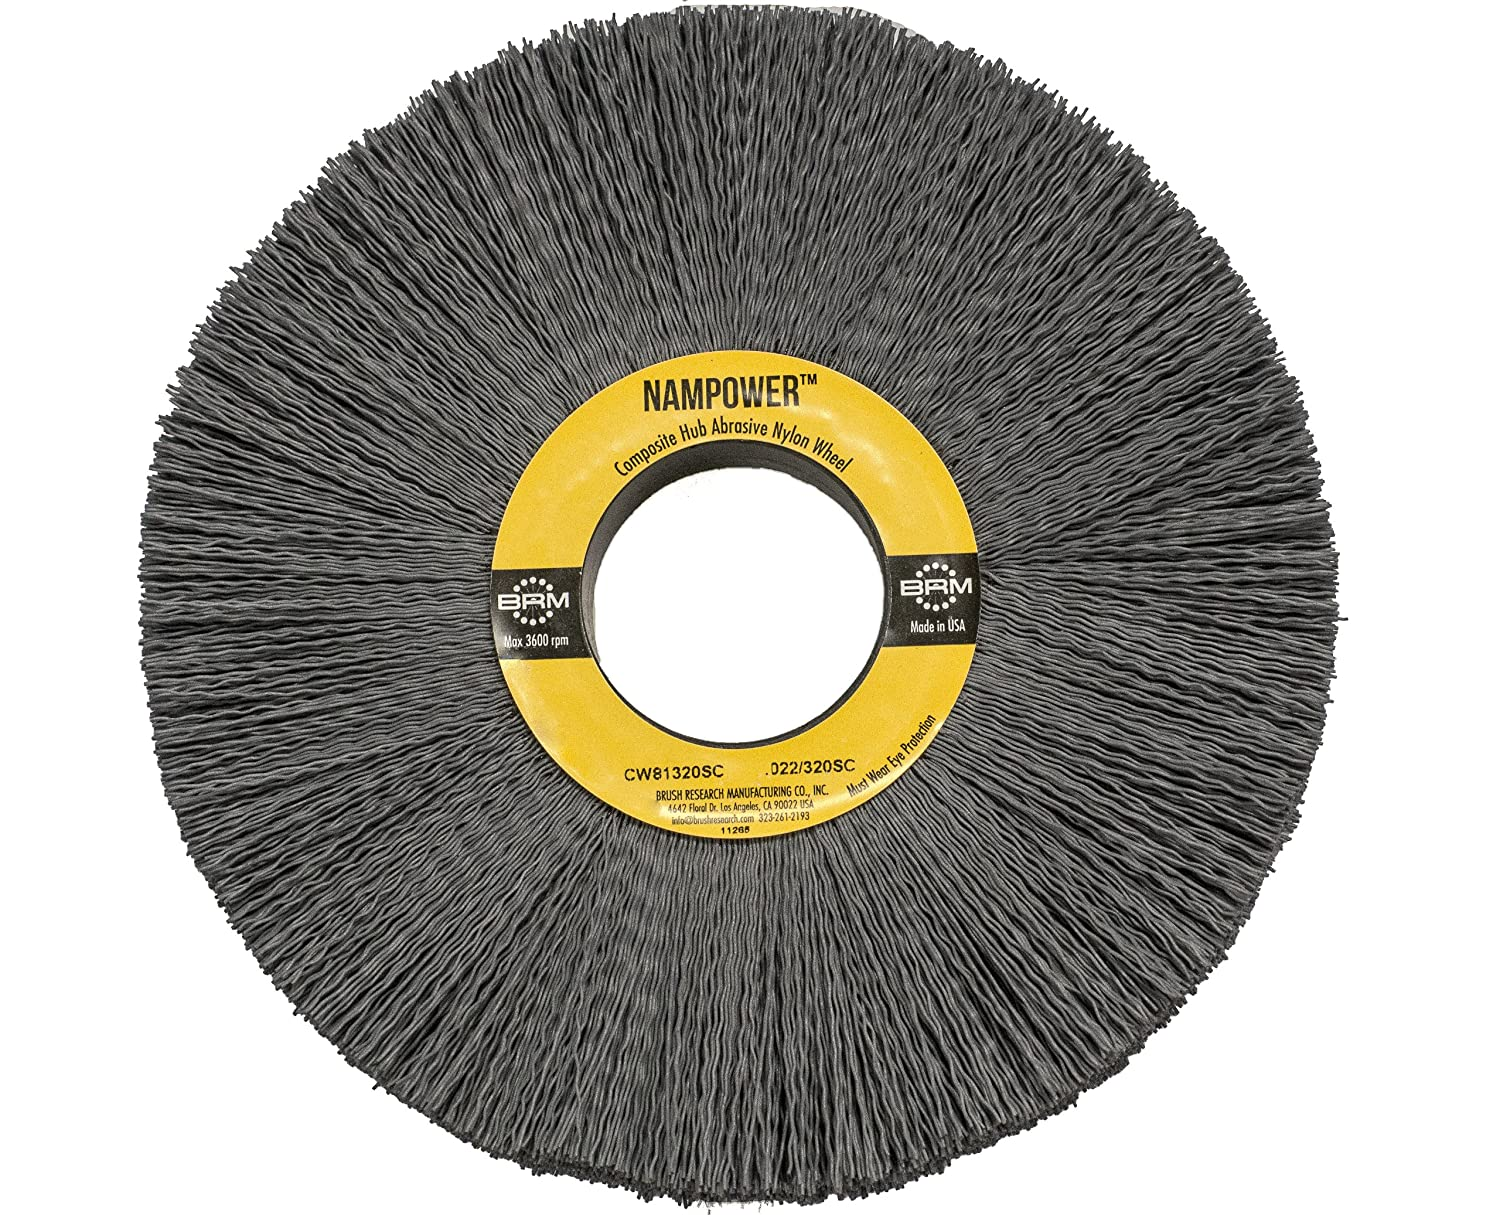 0.040 Wire Diameter 6 Diameter 0.040 Wire Diameter 2 Arbor Hole 6 Diameter Brush Research CW61040120SC Nampower Composite Hub Abrasive Nylon Wheel Brush Round Hole Silicon Carbide Filament 2 Arbor Hole 1.5 Bristle Length, Pack of 1